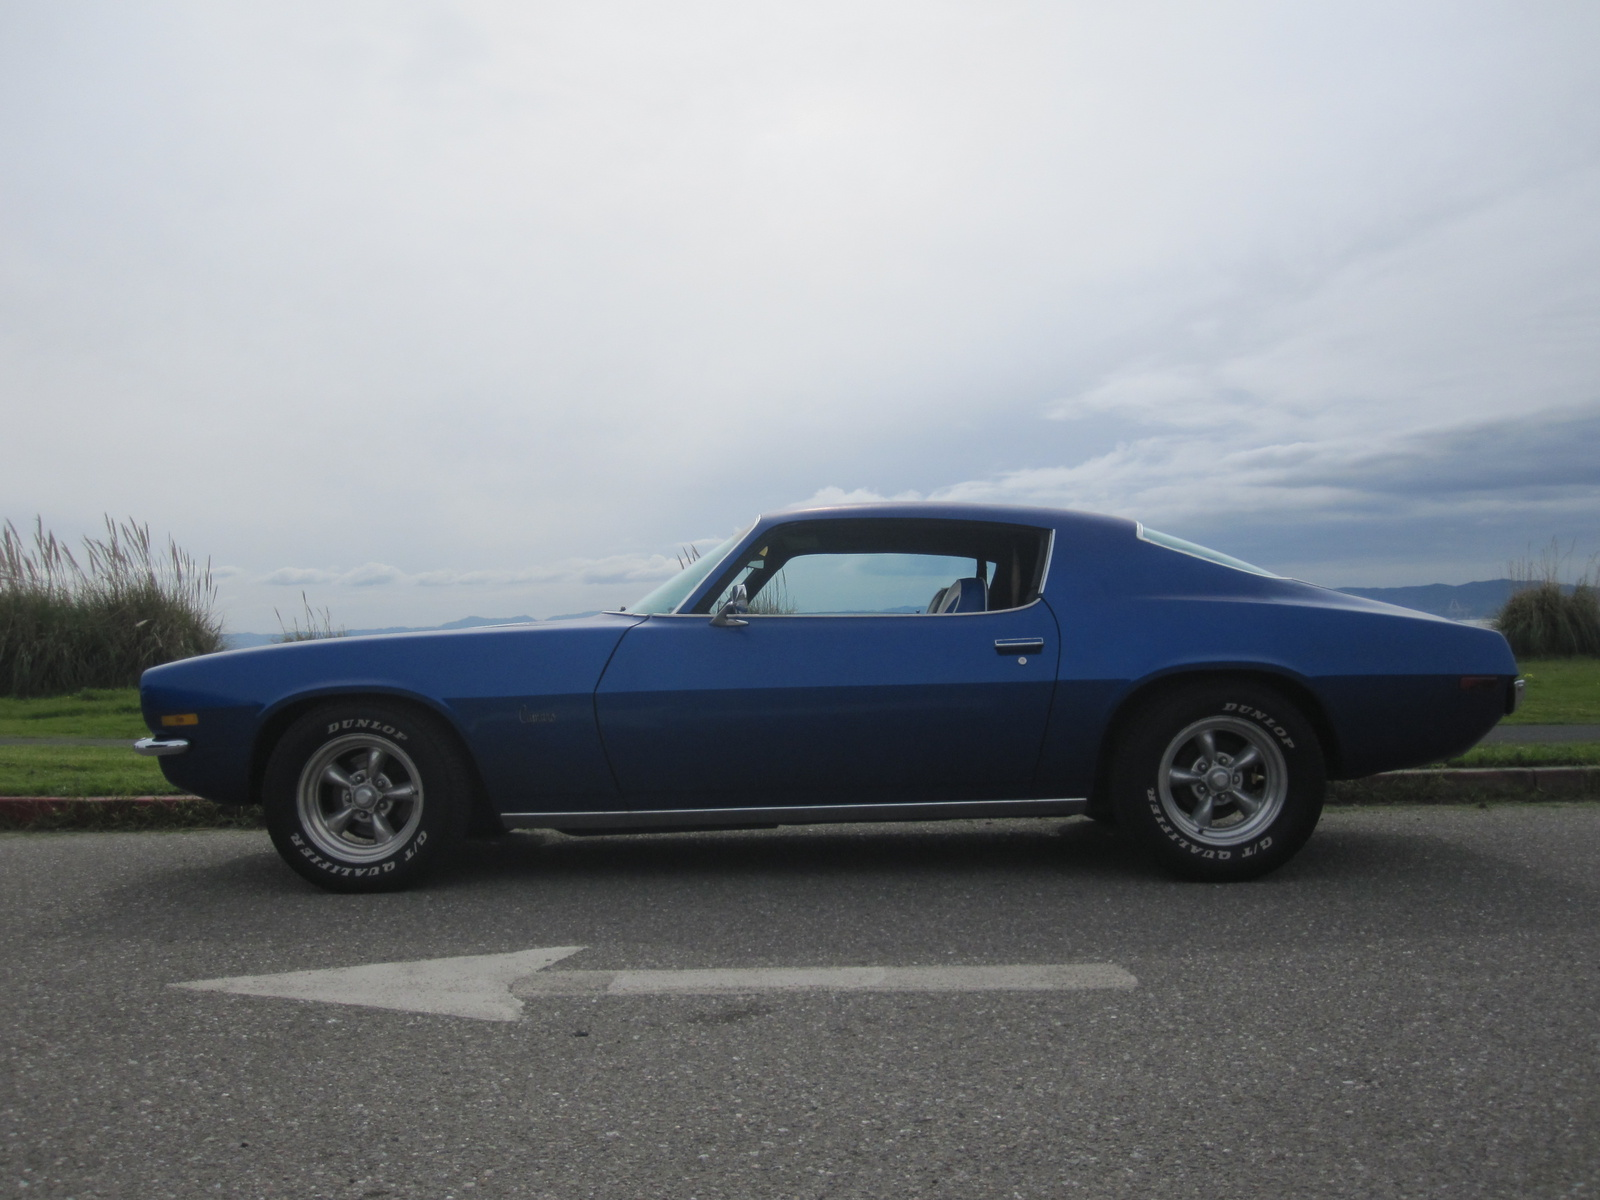 1970 Chevrolet Monte Carlo 2 further 40223234 as well F Bodys 1970 73 further 1973 Chevrolet Camaro Pictures C3672 pi35766658 additionally 331031681658. on 1971 chevrolet camaro ss